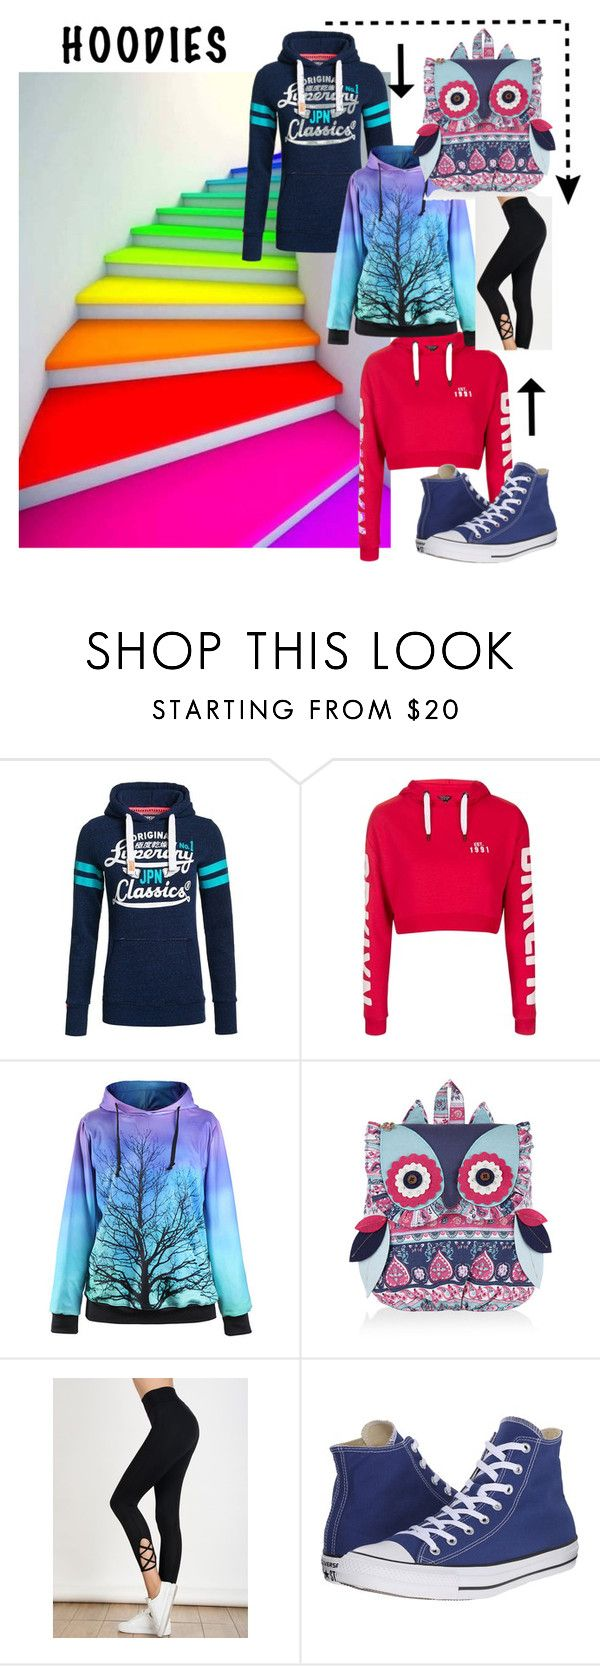 """""""hoodies"""" by explorer-14673103603 ❤ liked on Polyvore featuring Superdry, Topshop, Monsoon and Converse"""